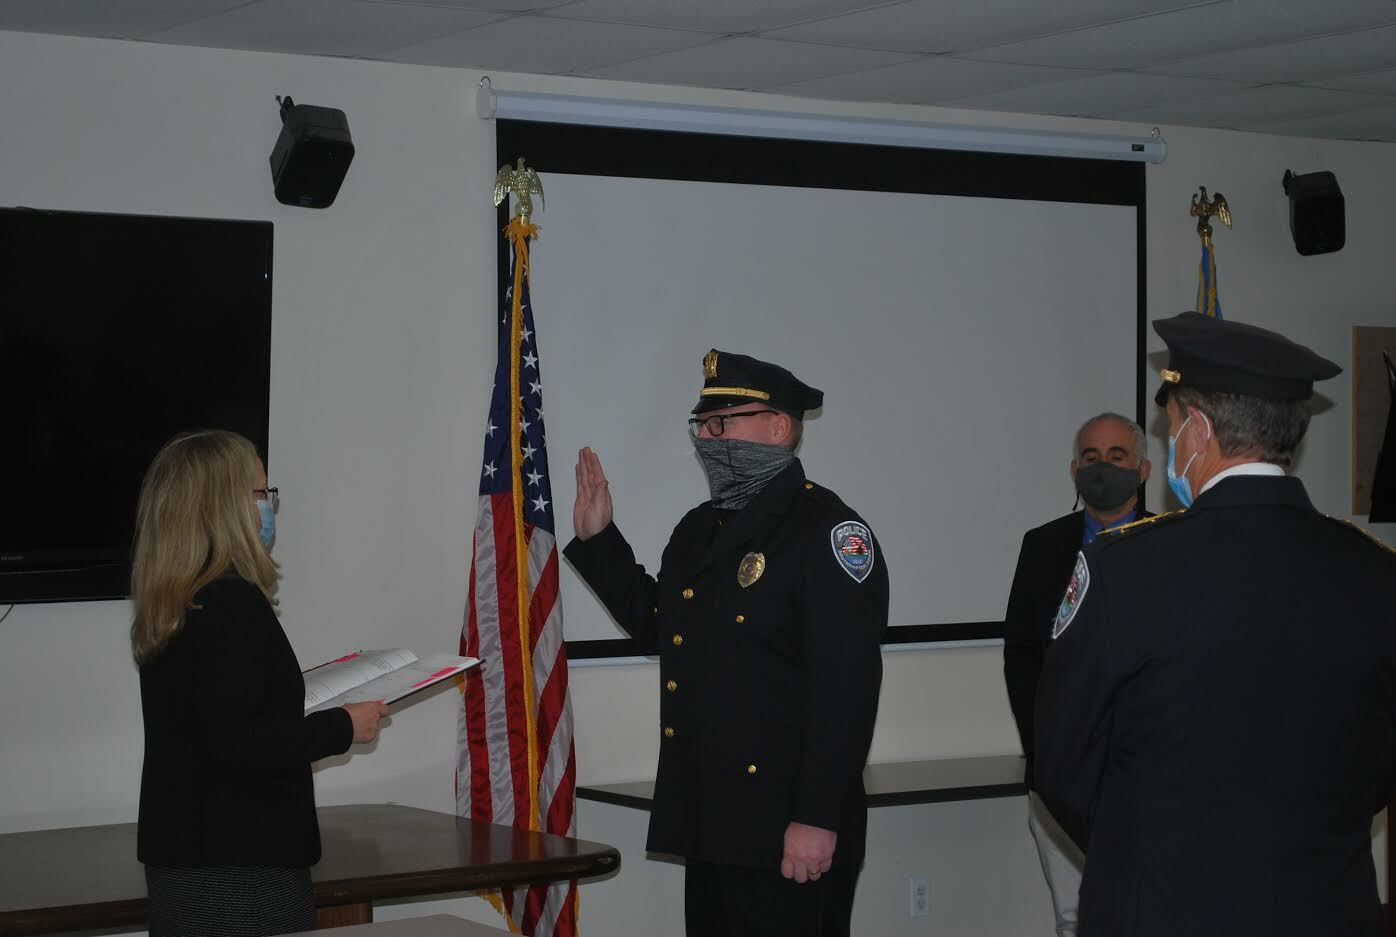 Town Clerk Sundy Schermeyer swears in Howard Kalb, promoting the sergeant to the rank of lieutenant in the Southampton Town Police Department. COURTESY STPD